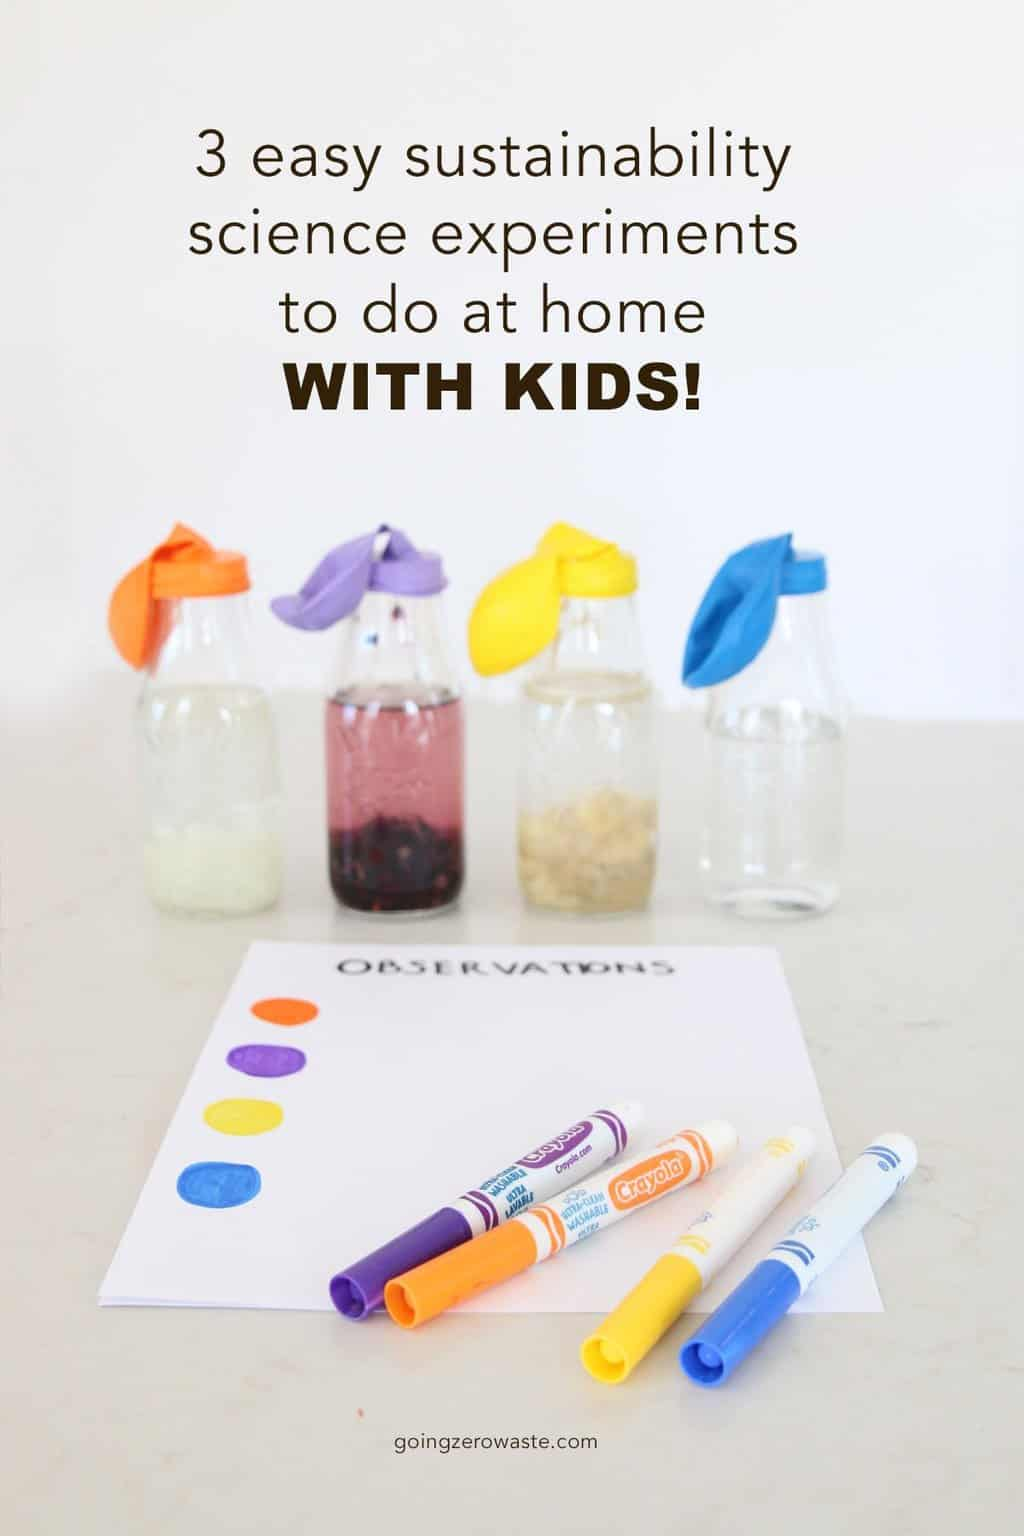 3 Simple Sustainability Science Experiments To Do At Home With Kids